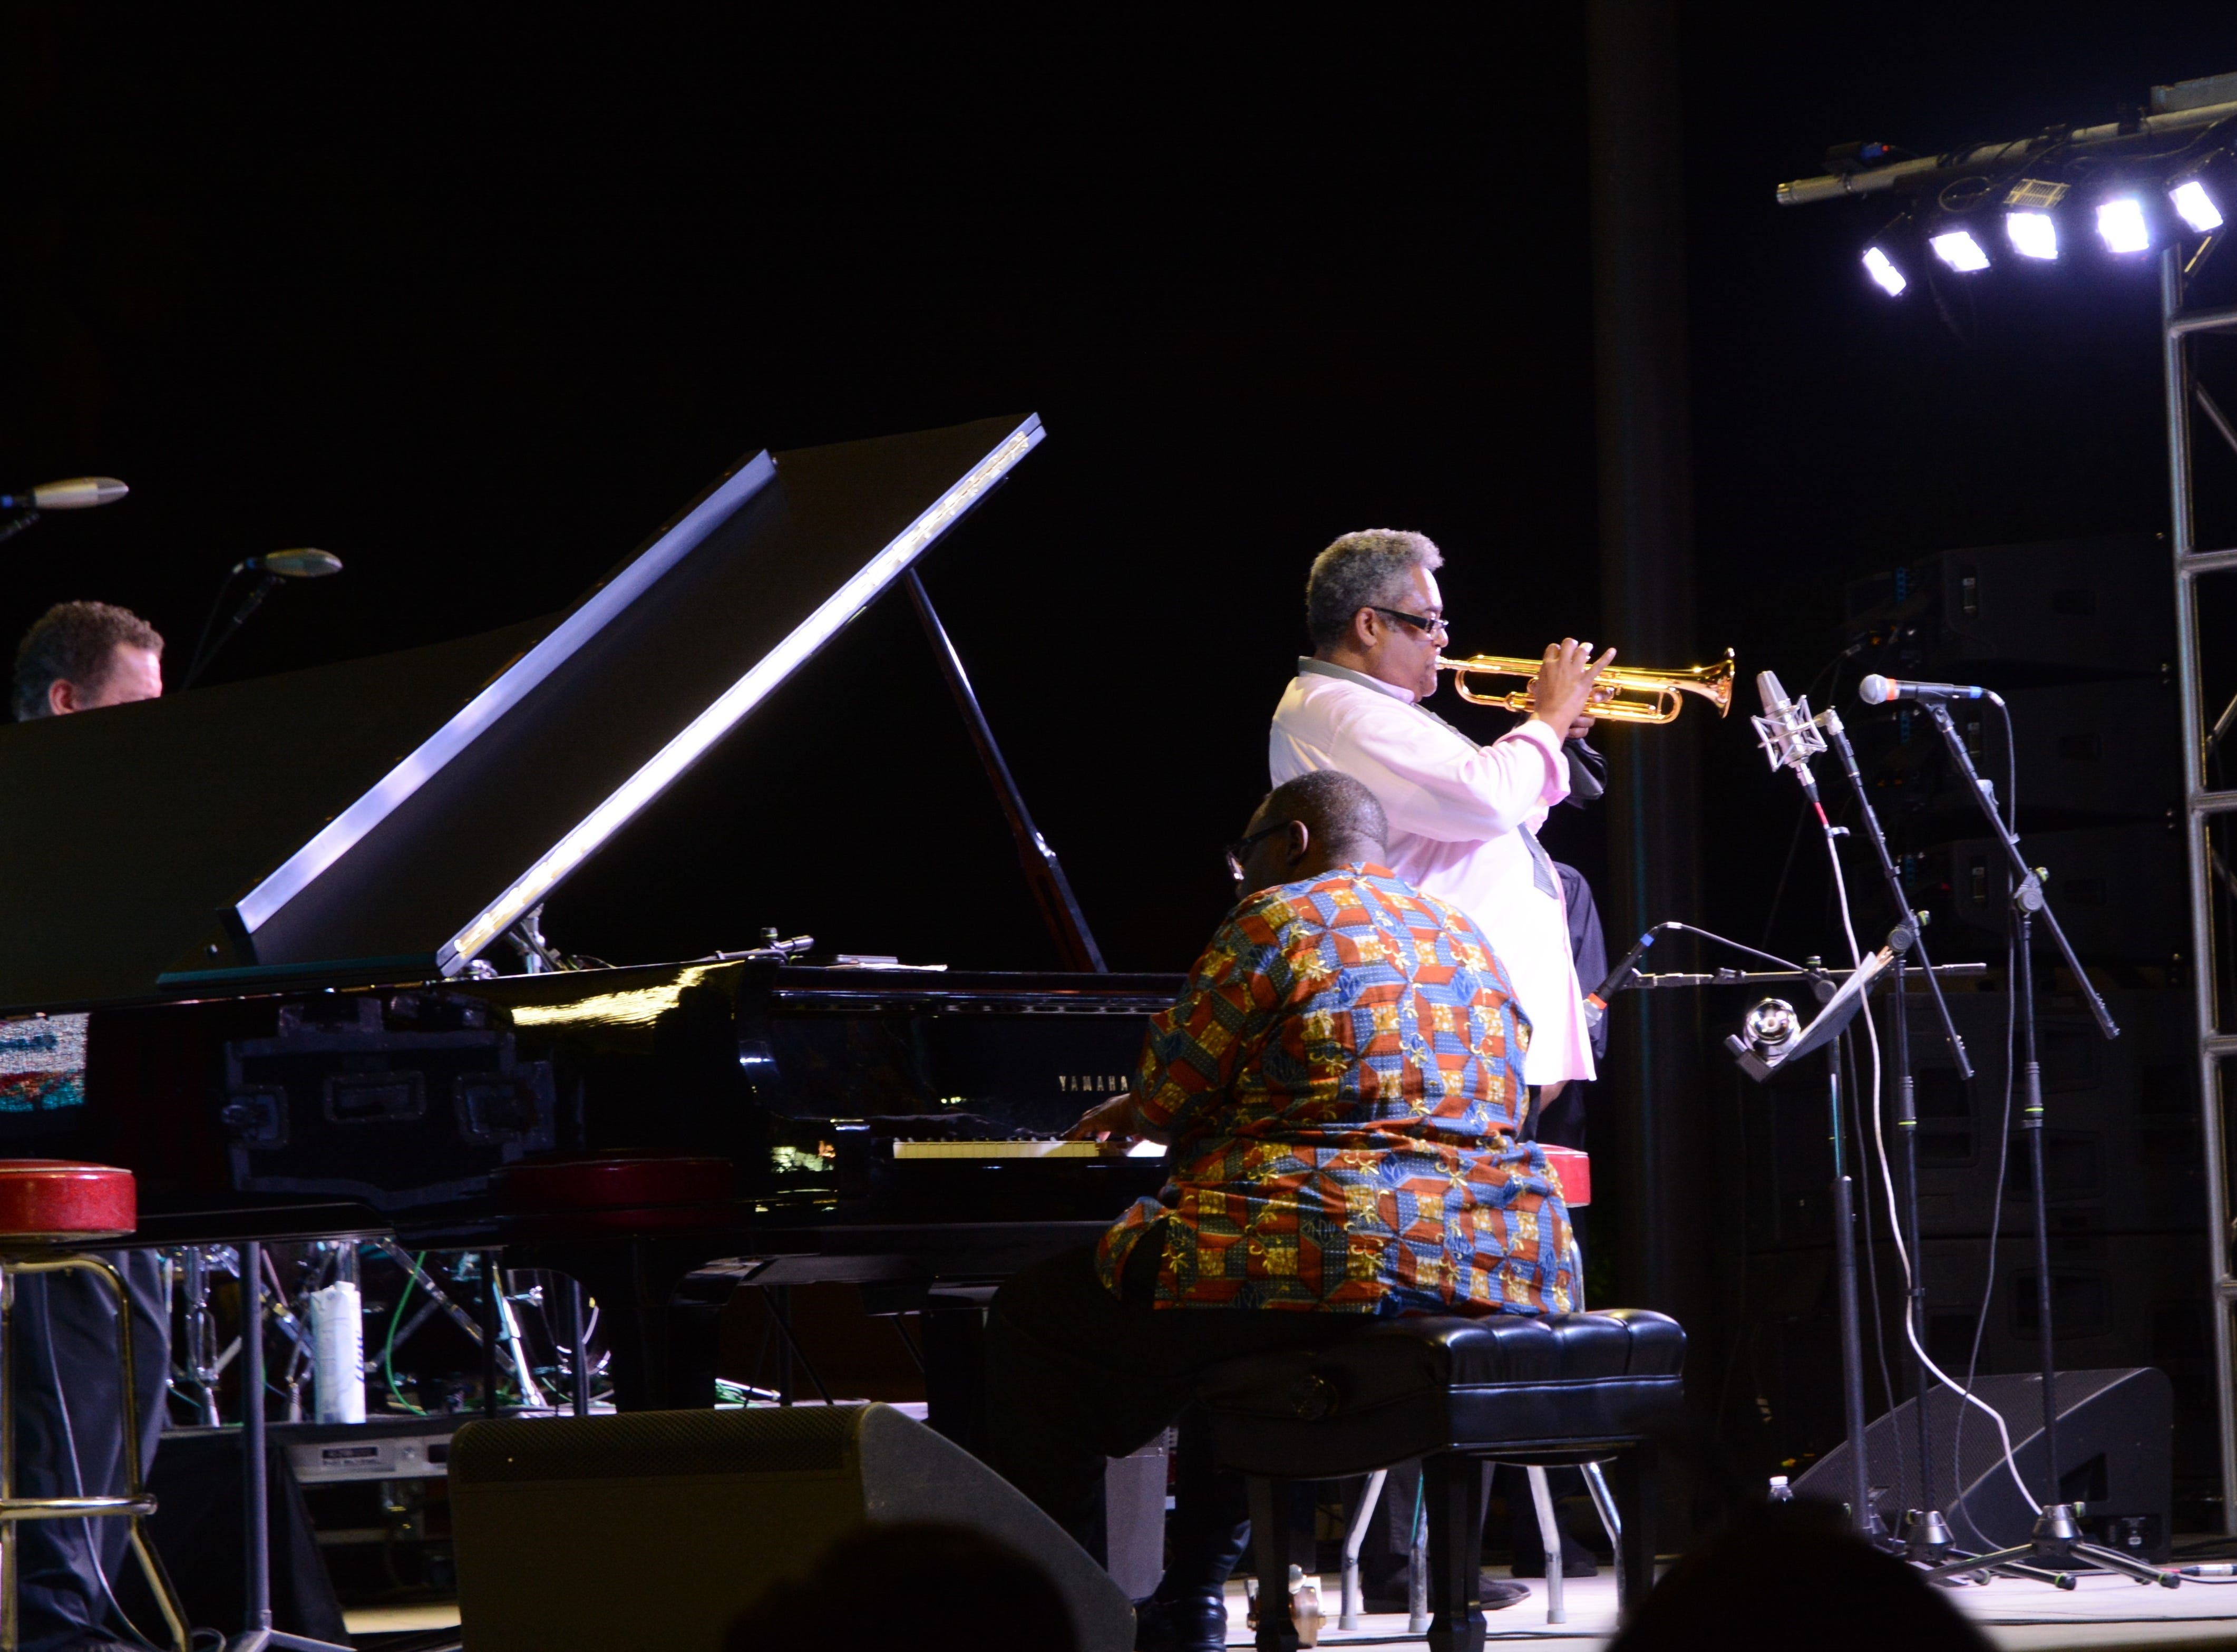 Pianist Cyrus Chestnut (left) and trumpeter Jon Faddis perform at the Chandler Jazz Festival on April 6, 2019 as part of the Dizzy Gillespie All-Stars band.